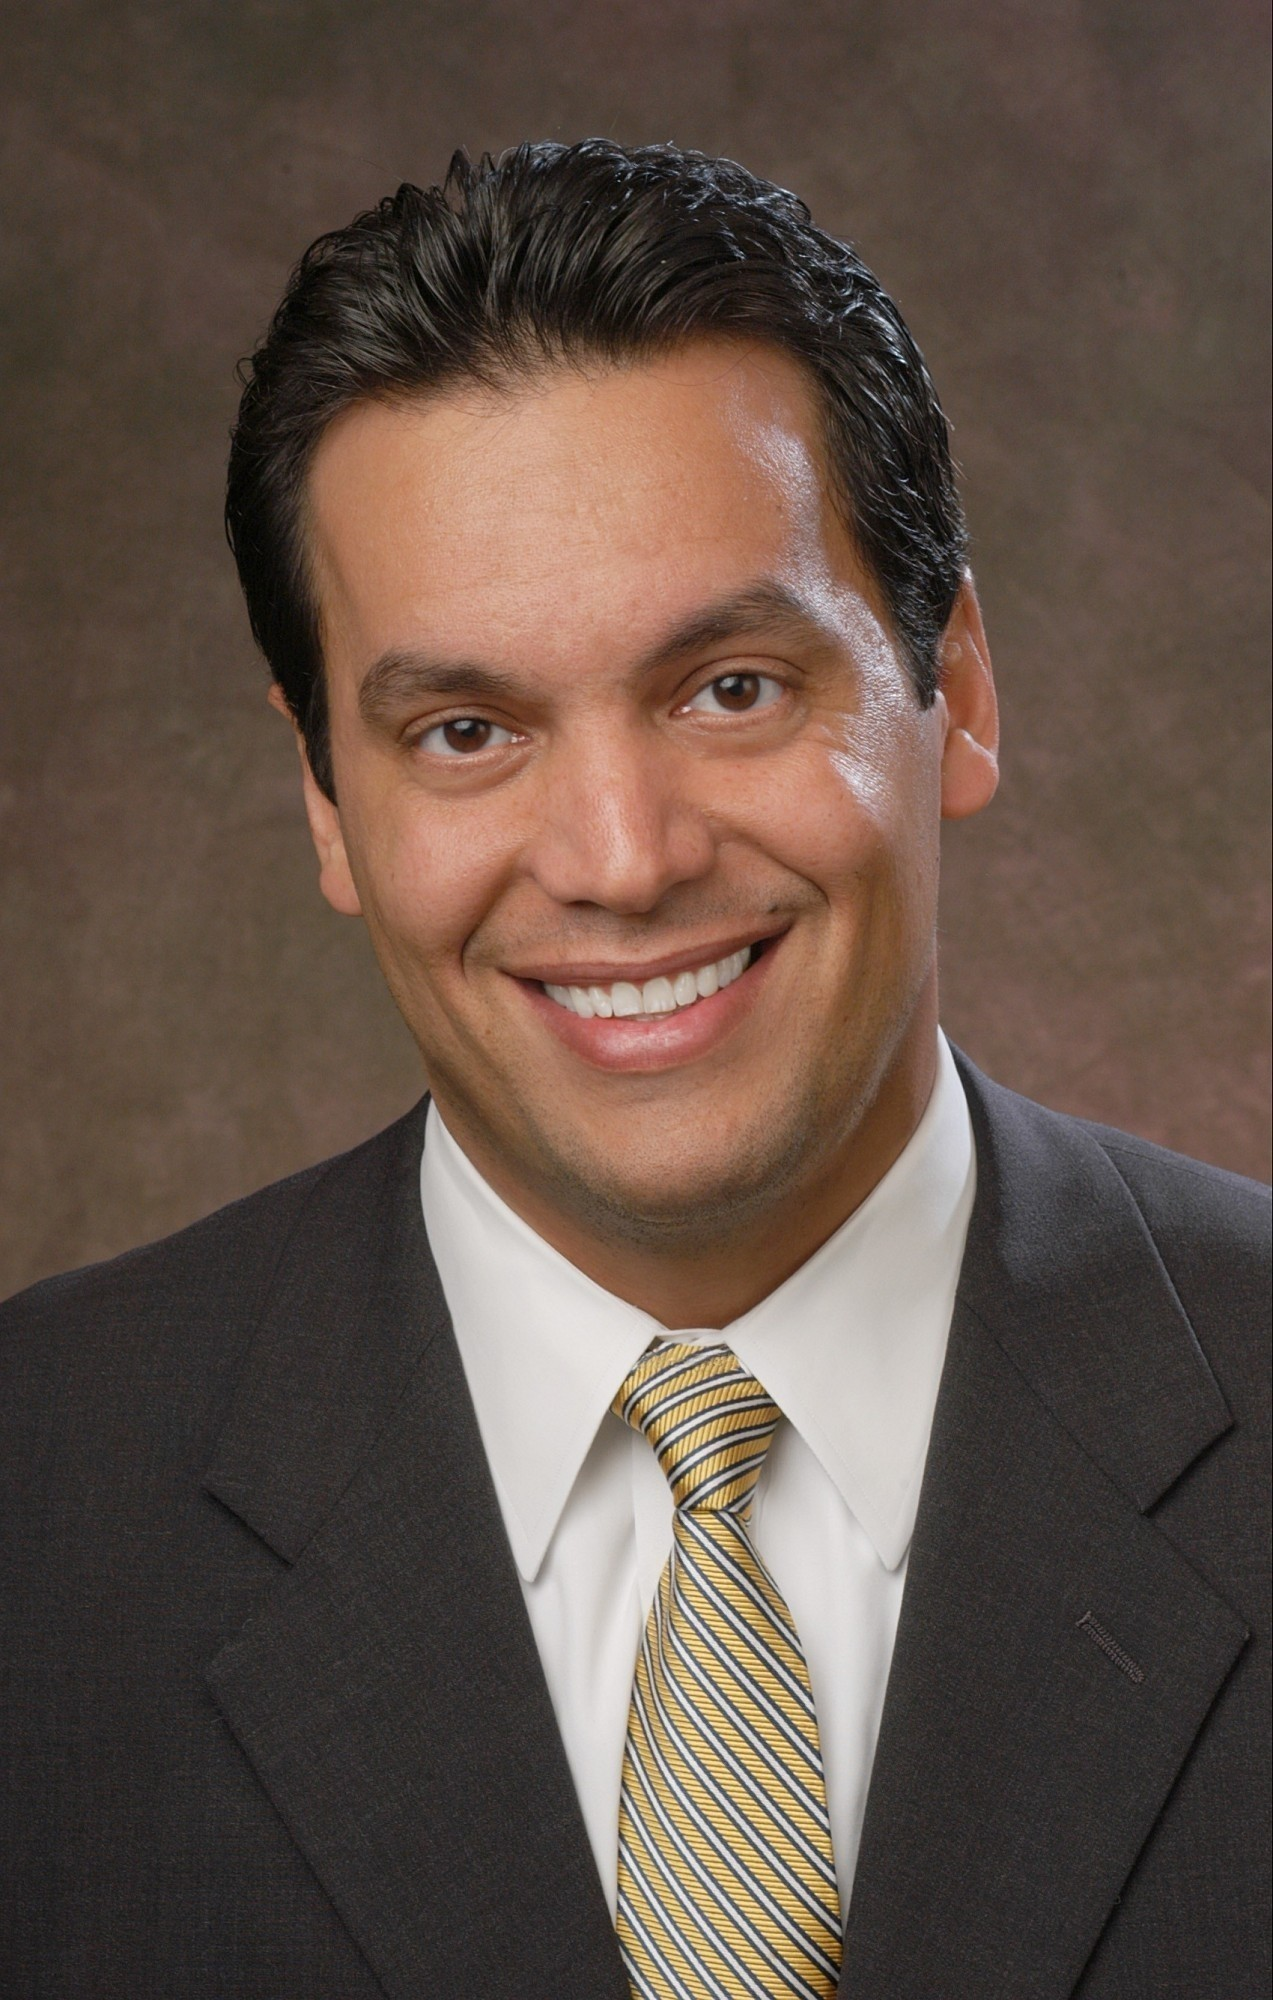 Joe Ianniello